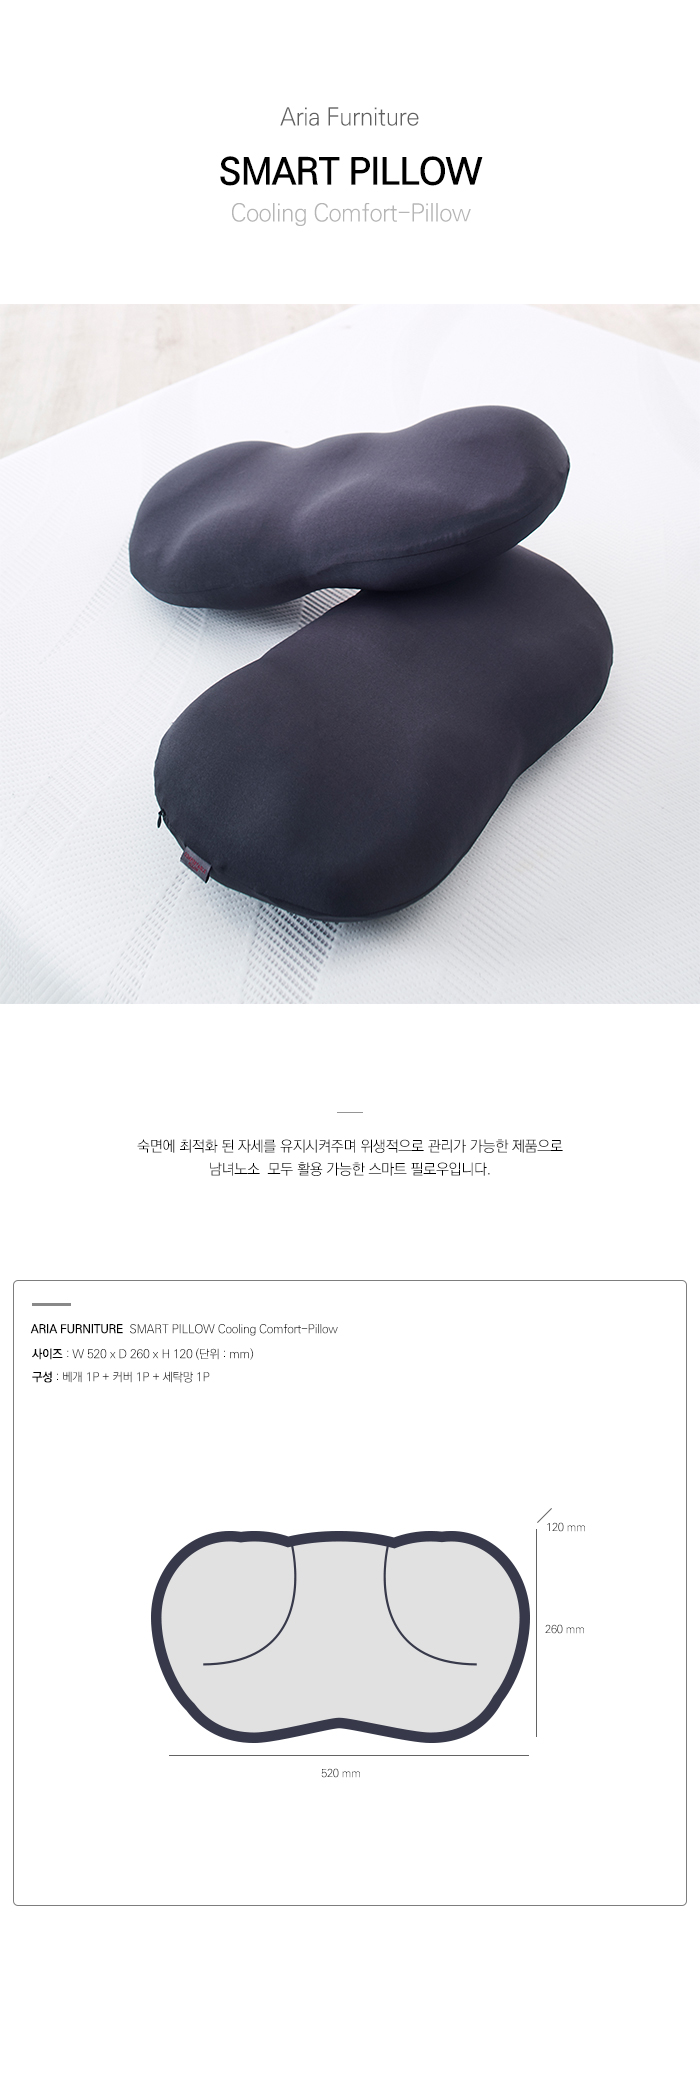 EPS_Particles_Pillow_190611-1.jpg